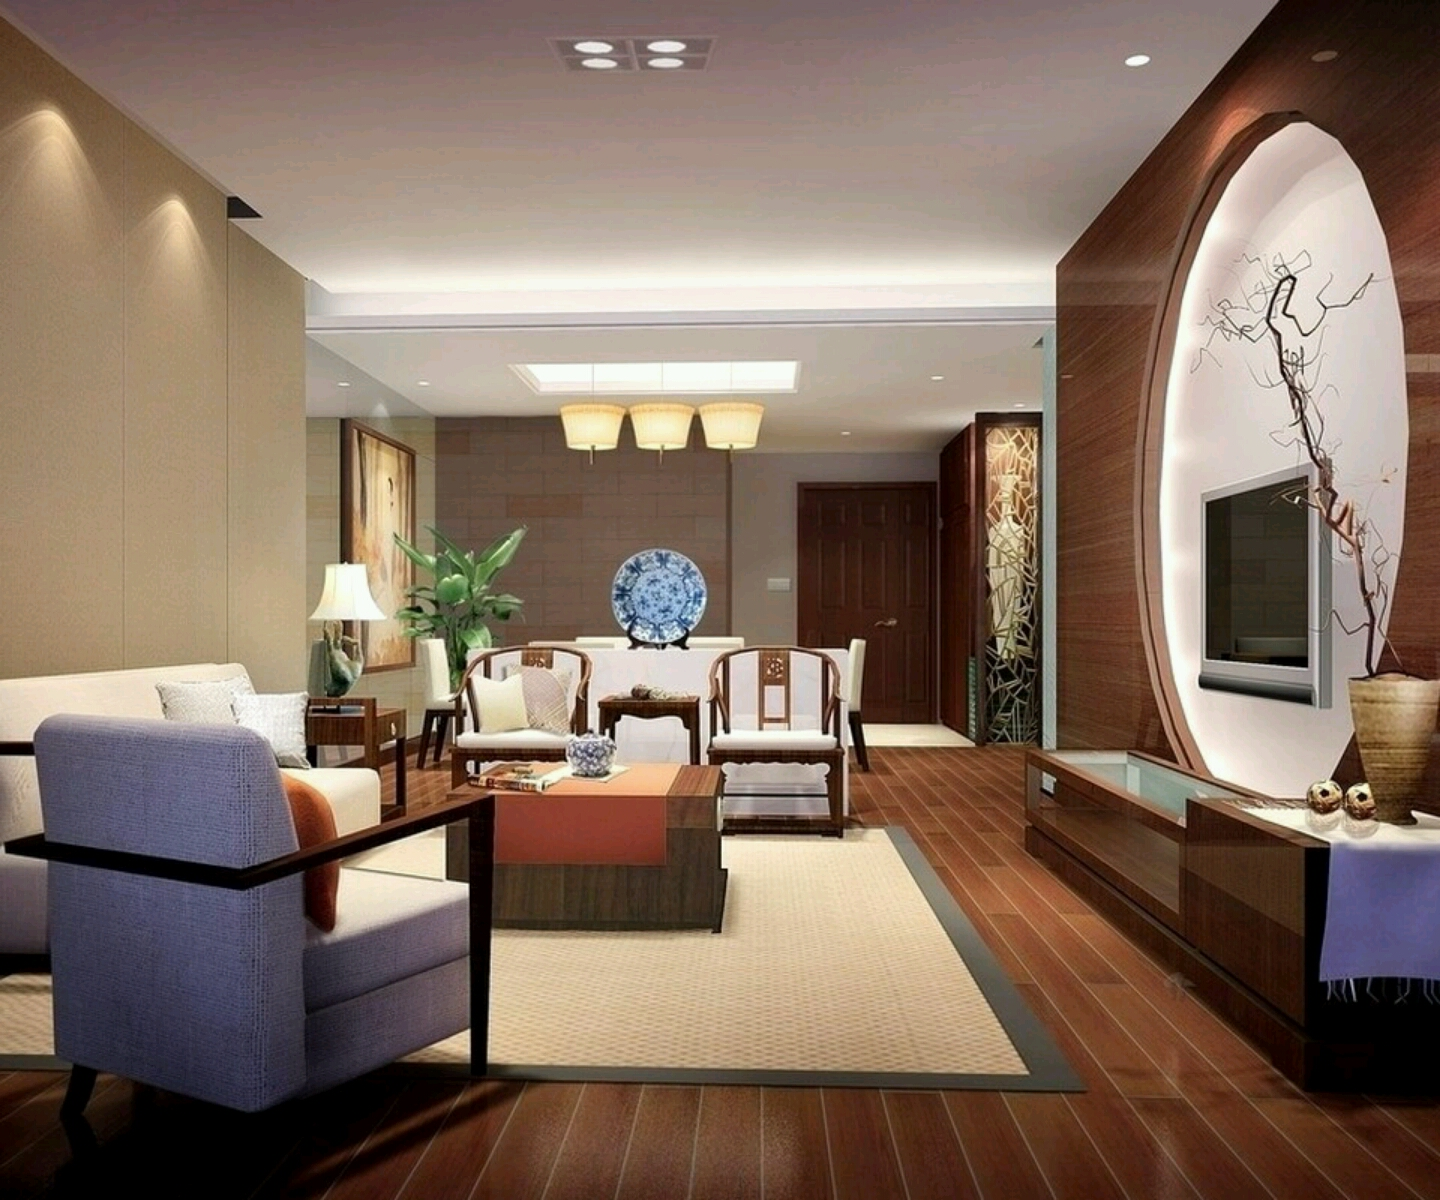 Luxury homes interior decoration living room designs ideas for Home living room design ideas